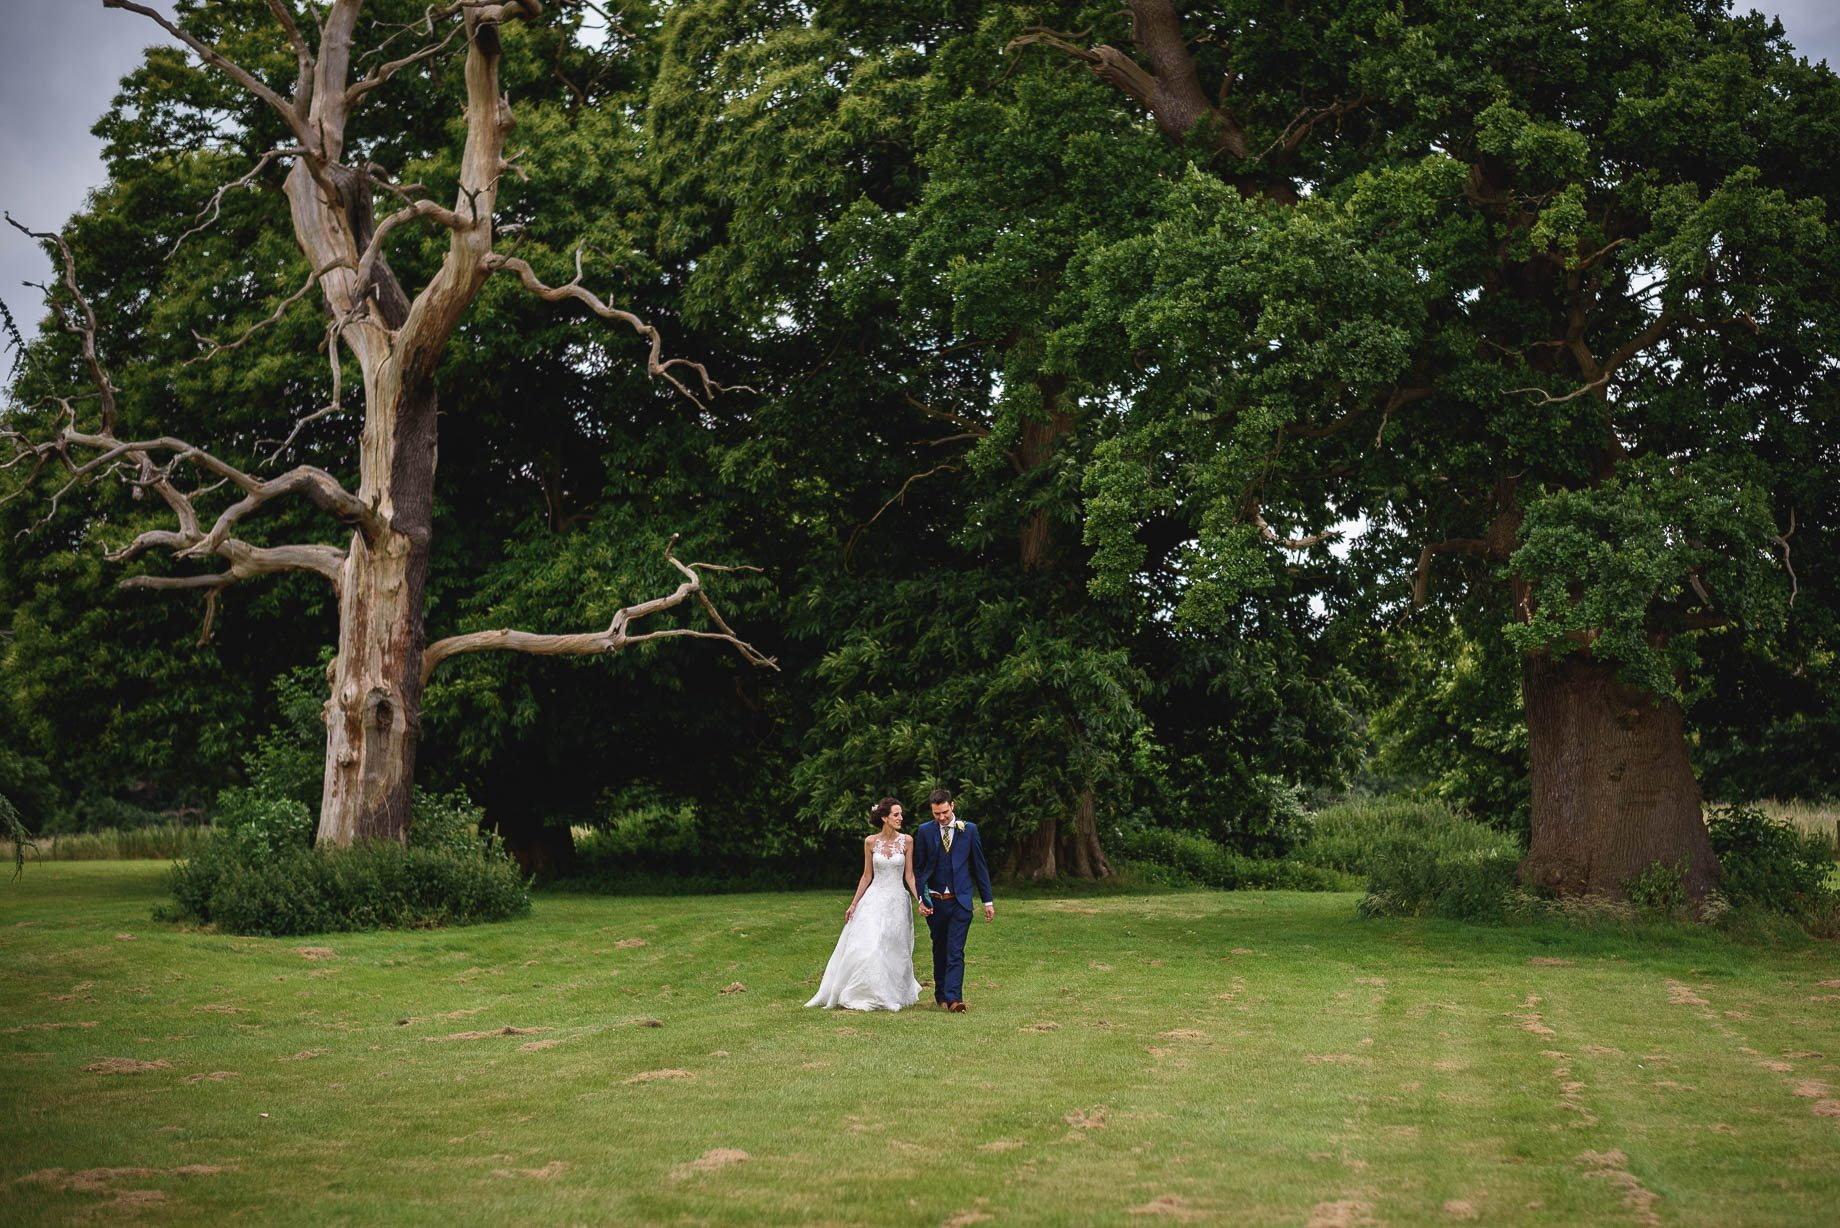 Hertfordshire wedding photography - Sarah and Stephen by Guy Collier Photography (148 of 161)